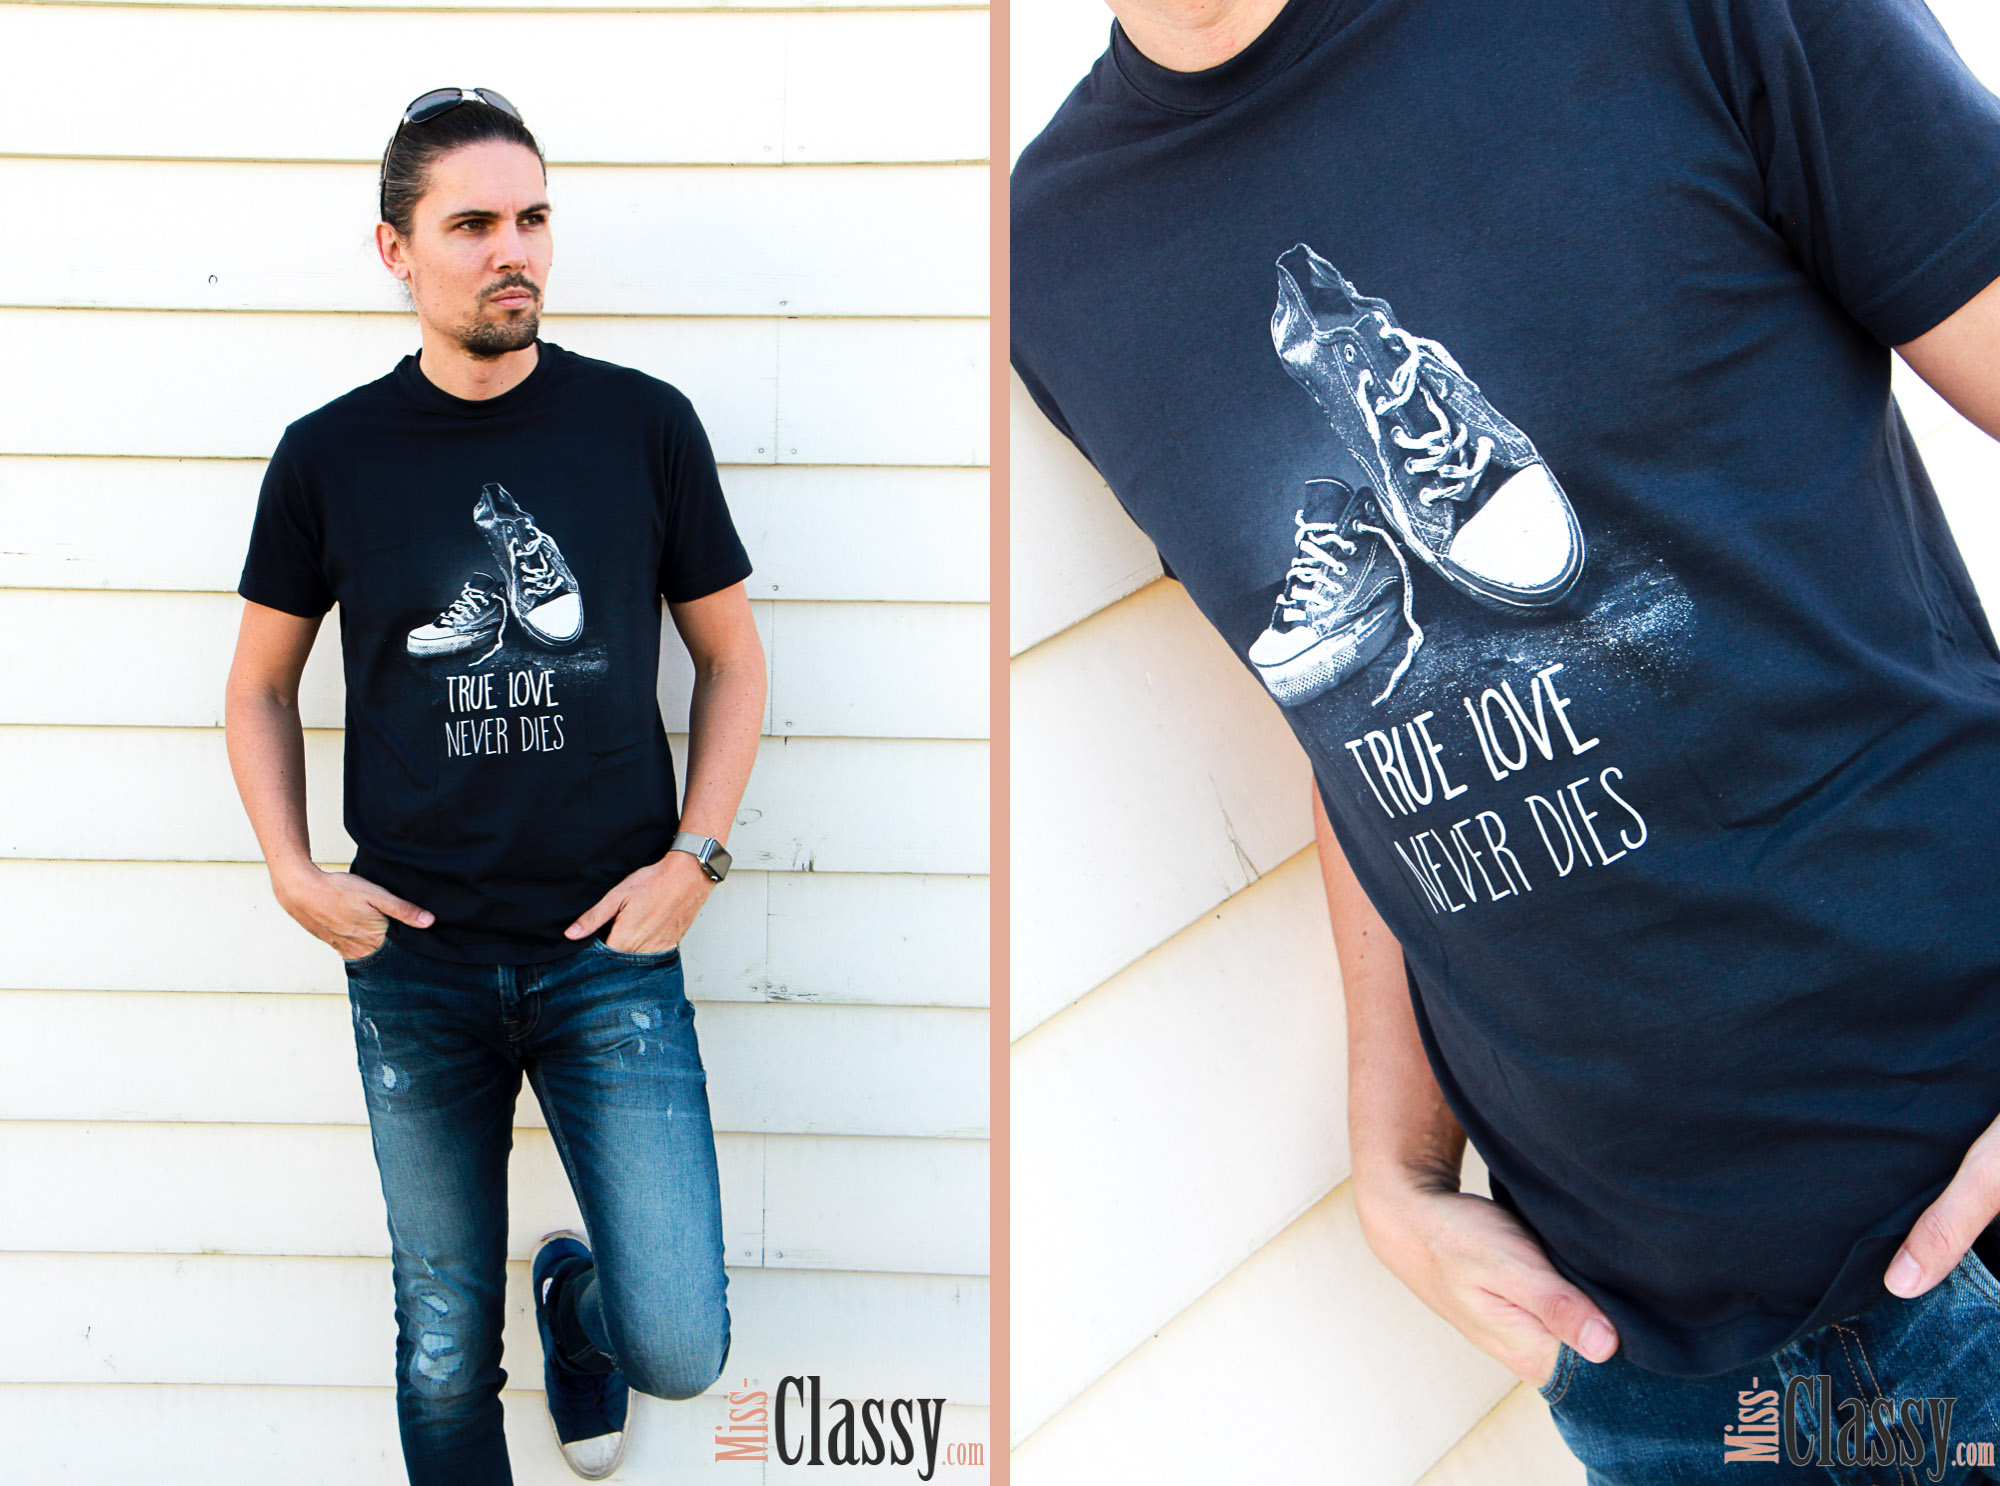 OUTFIT Wenn Kater schwarz, T-Shirt gut, Miss Classy, classy, beclassy, Fashionblog, Fashionblogger, Österreich, Austria, Graz, All Black, Kater Likoli, T-Shirt, Converse, Apple Watch, Guess, Jeans, True Love never Dies